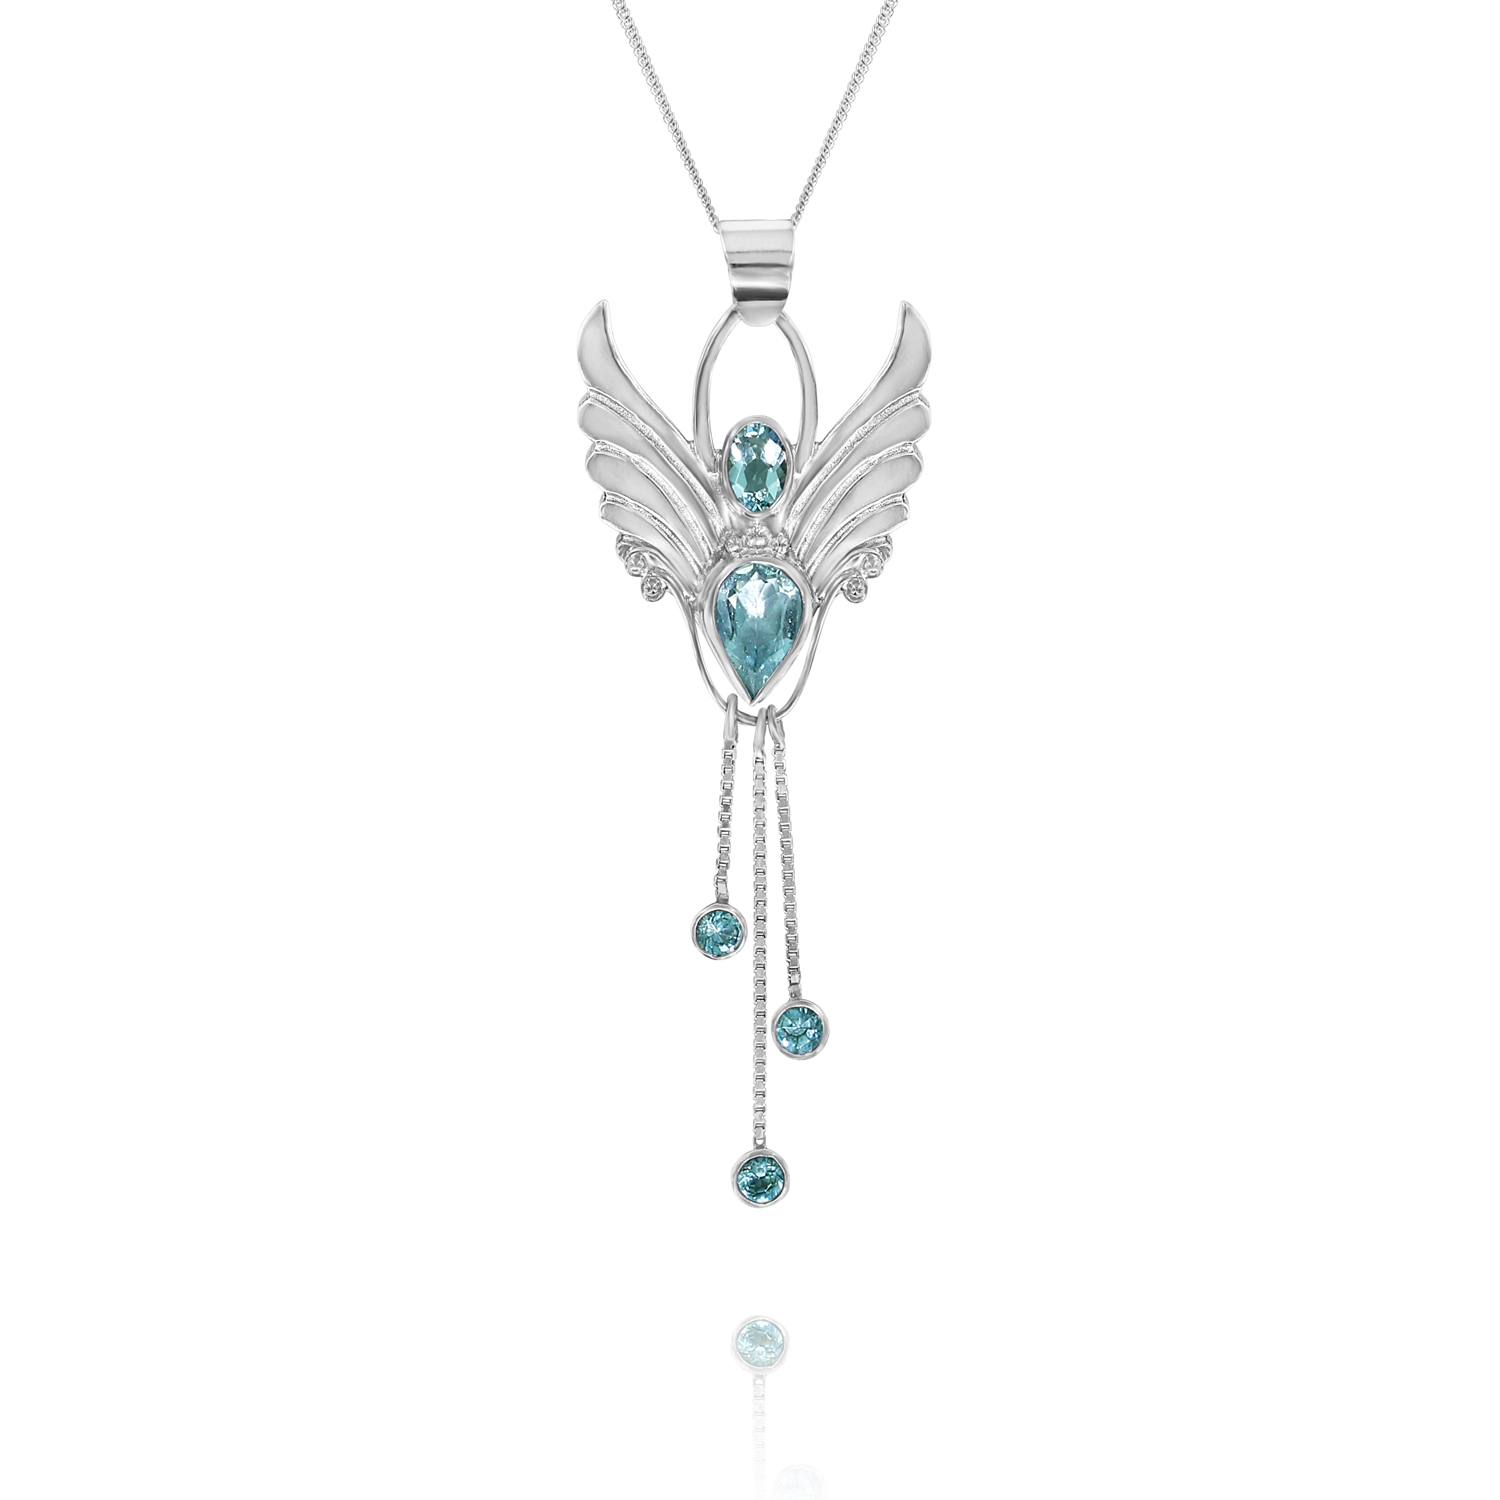 Angel necklace for self-confidence